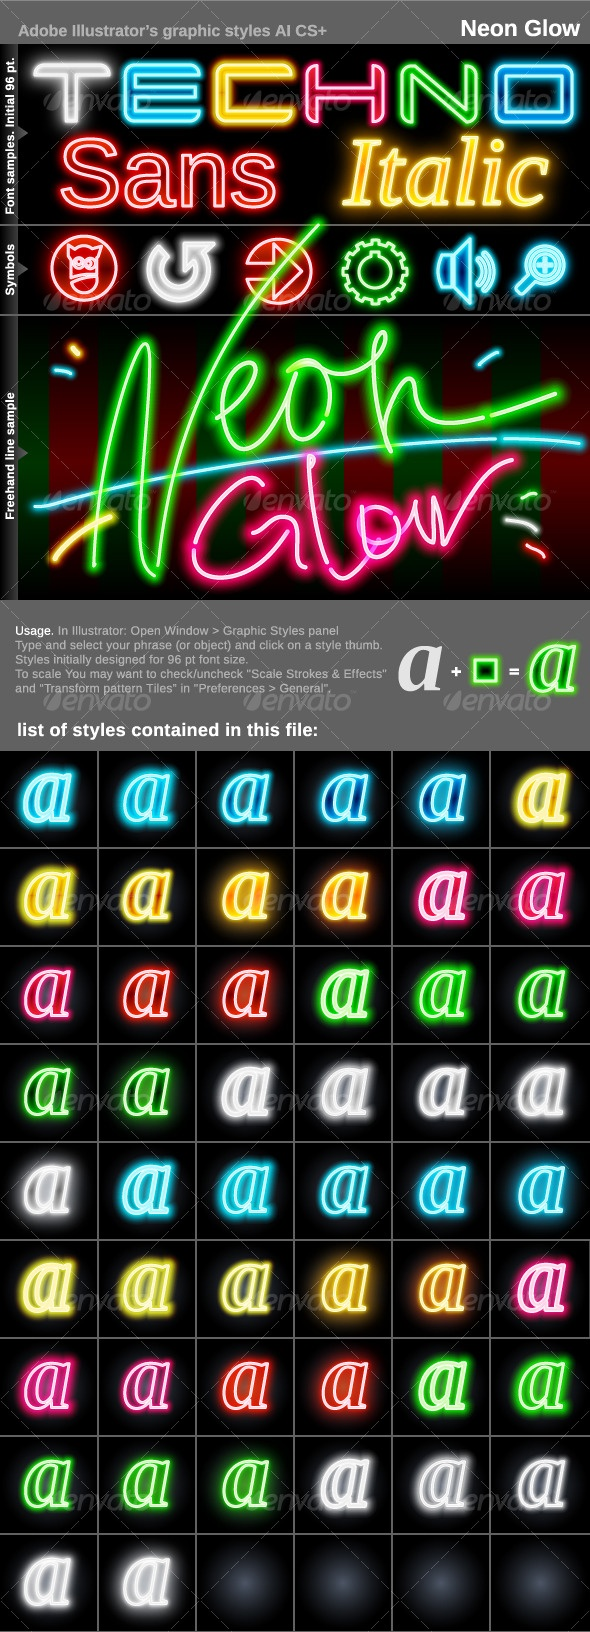 Illustrator Graphic Styles. Neon Glow